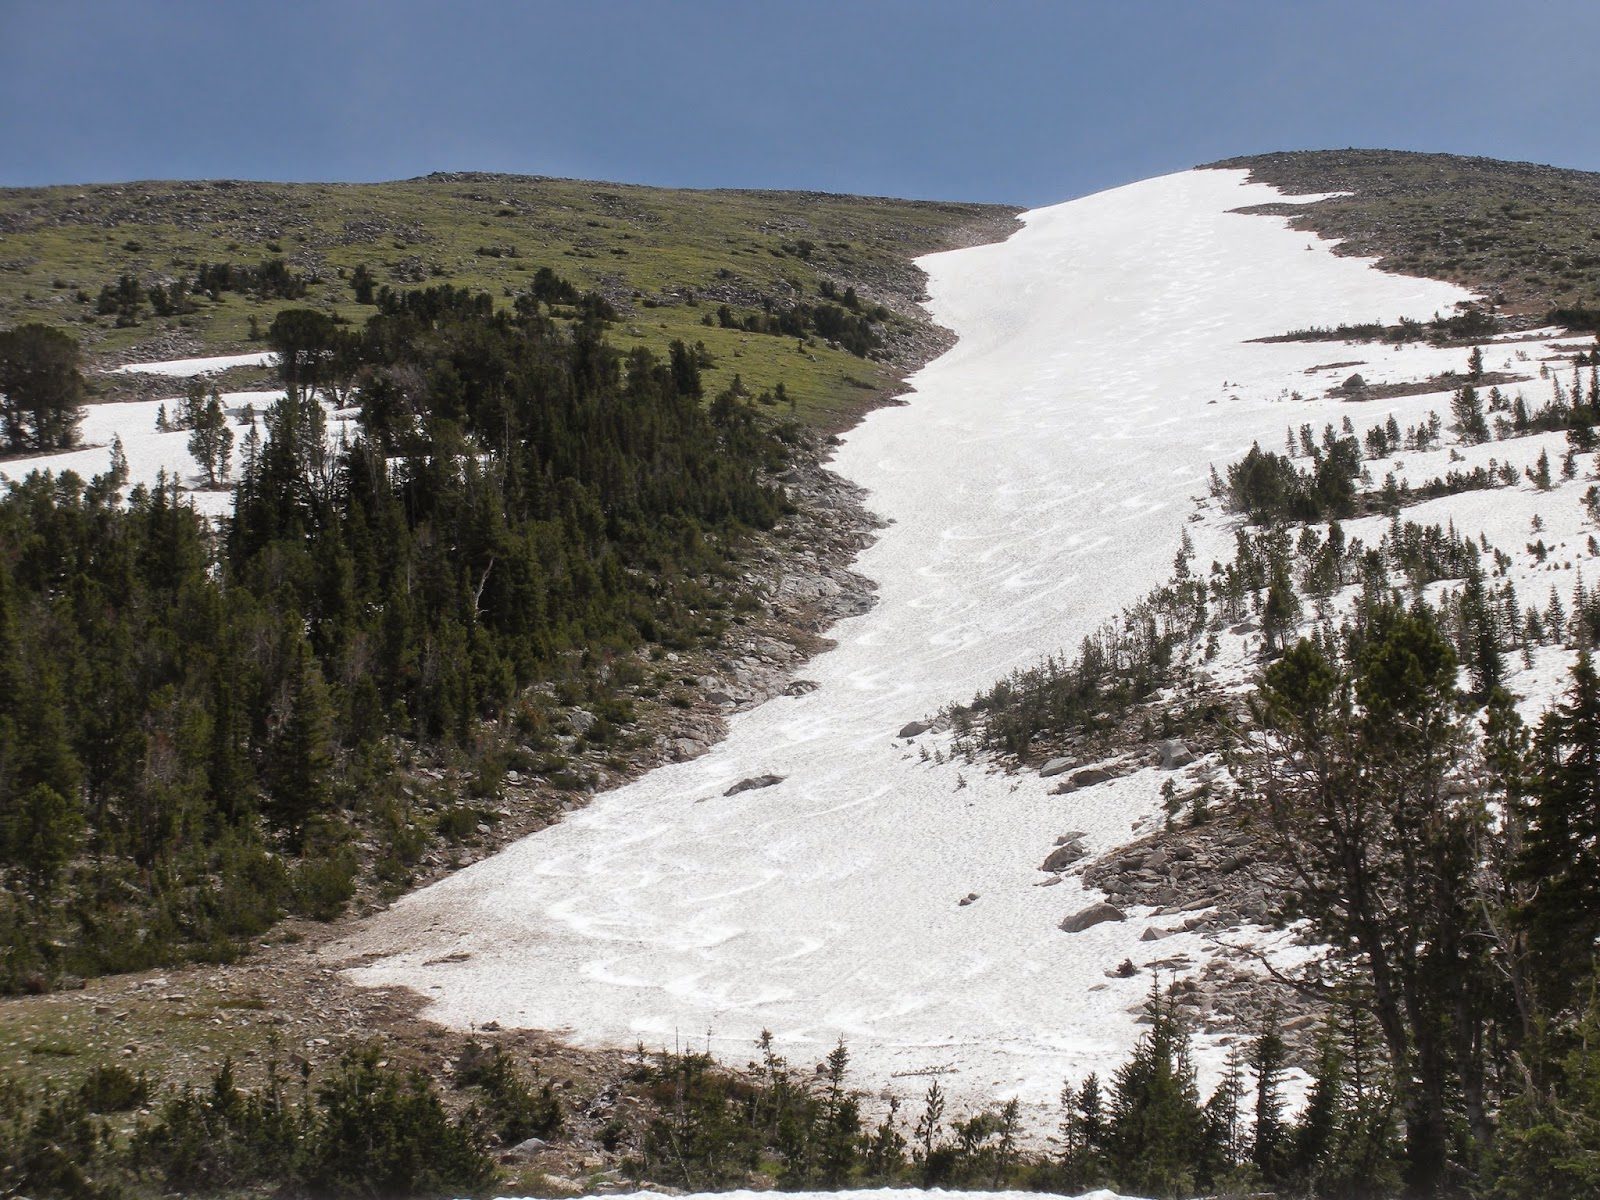 The Blaze is an iconic ski summer or winter. Located in the Madison Range, it is an easy drive from Bozeman